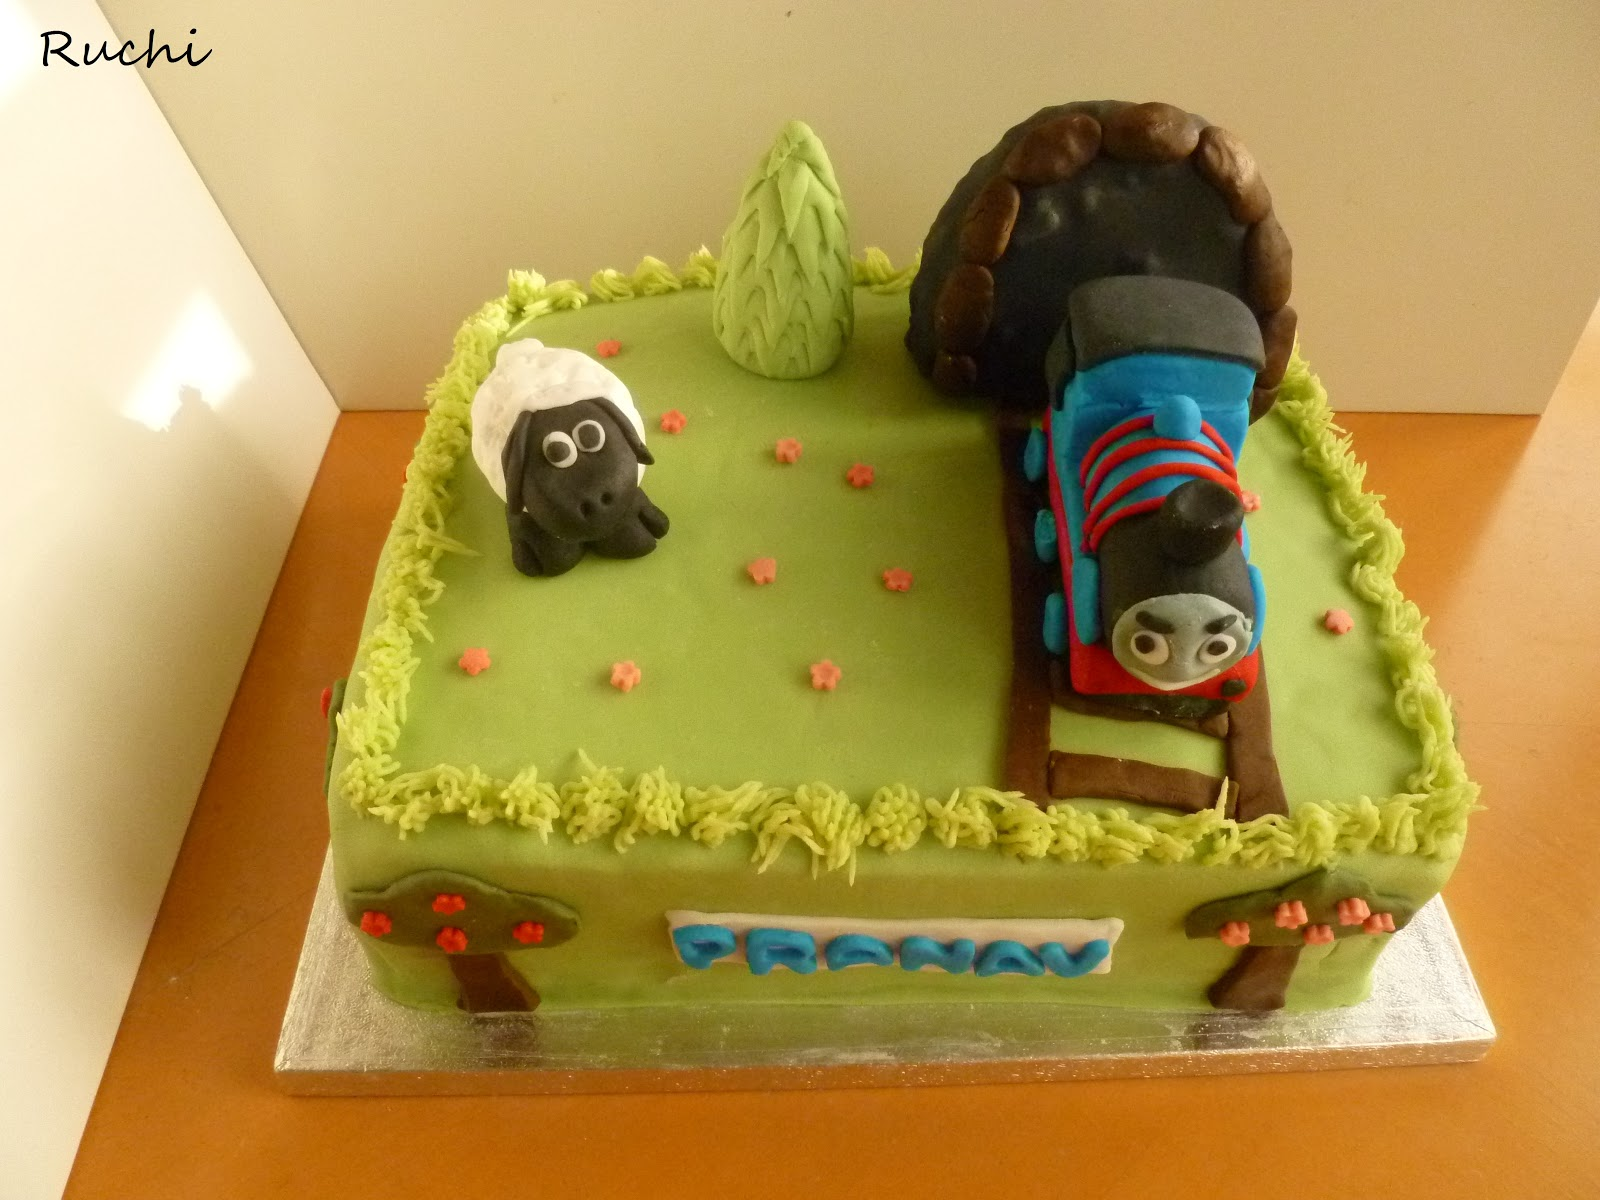 Cake Images Ruchi : RUCHI: Thomas Train Birthday Cake with few step by step ...